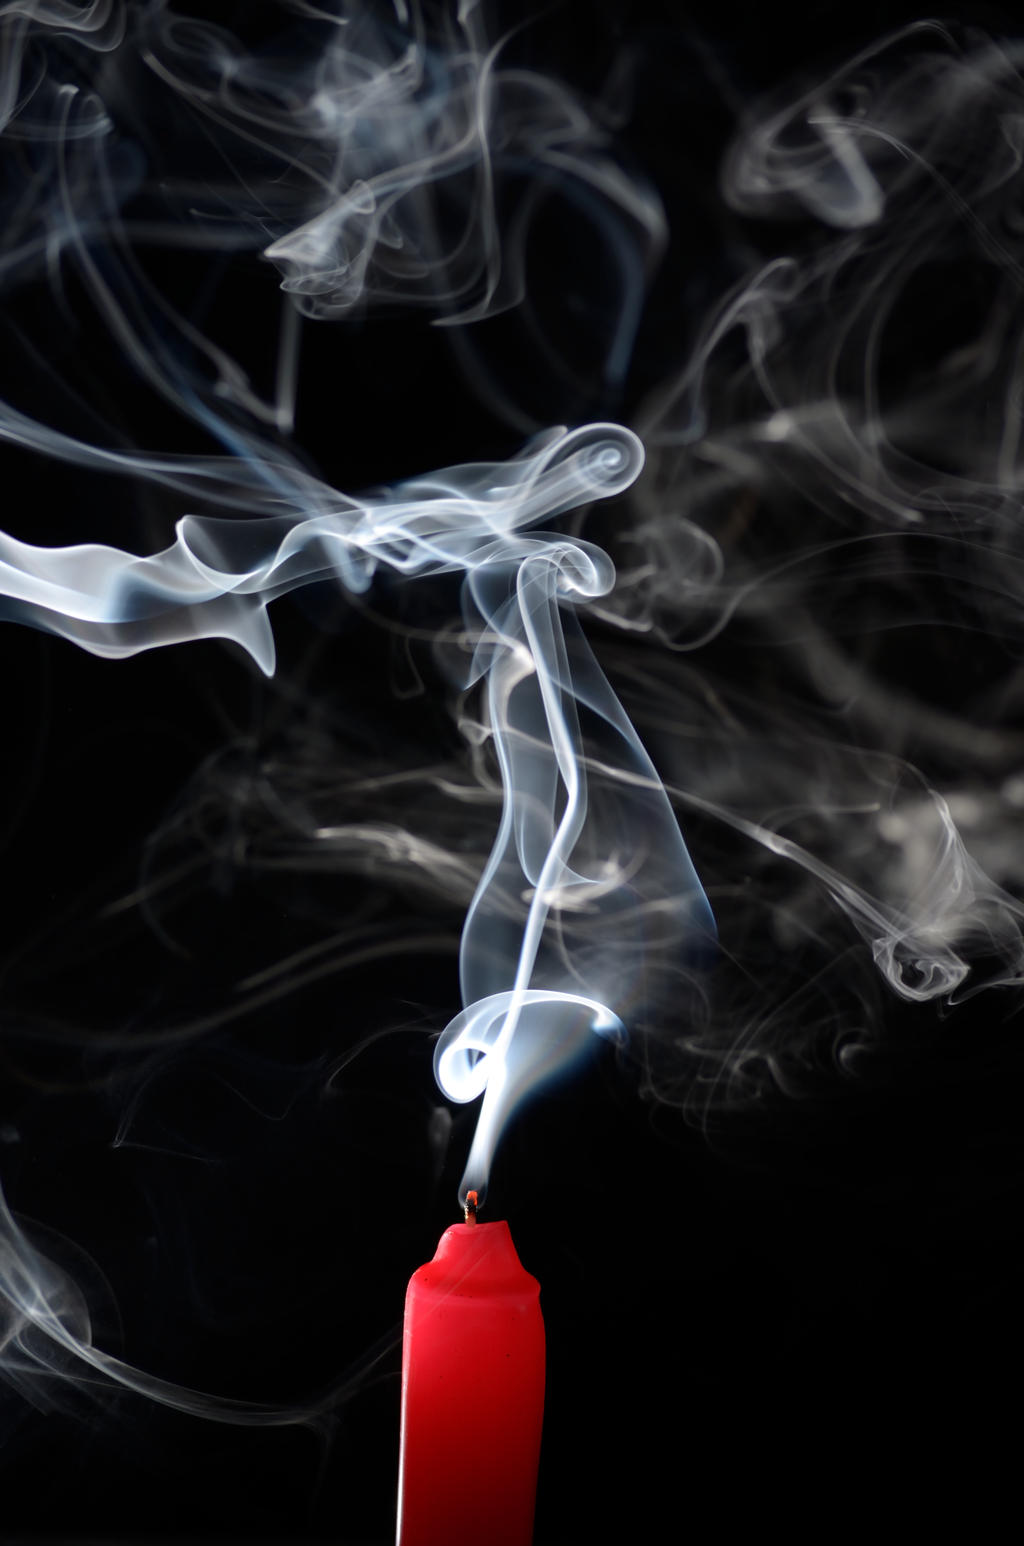 candle smoke by Sbojnik on DeviantArt for Candle Smoke Photography  143gtk